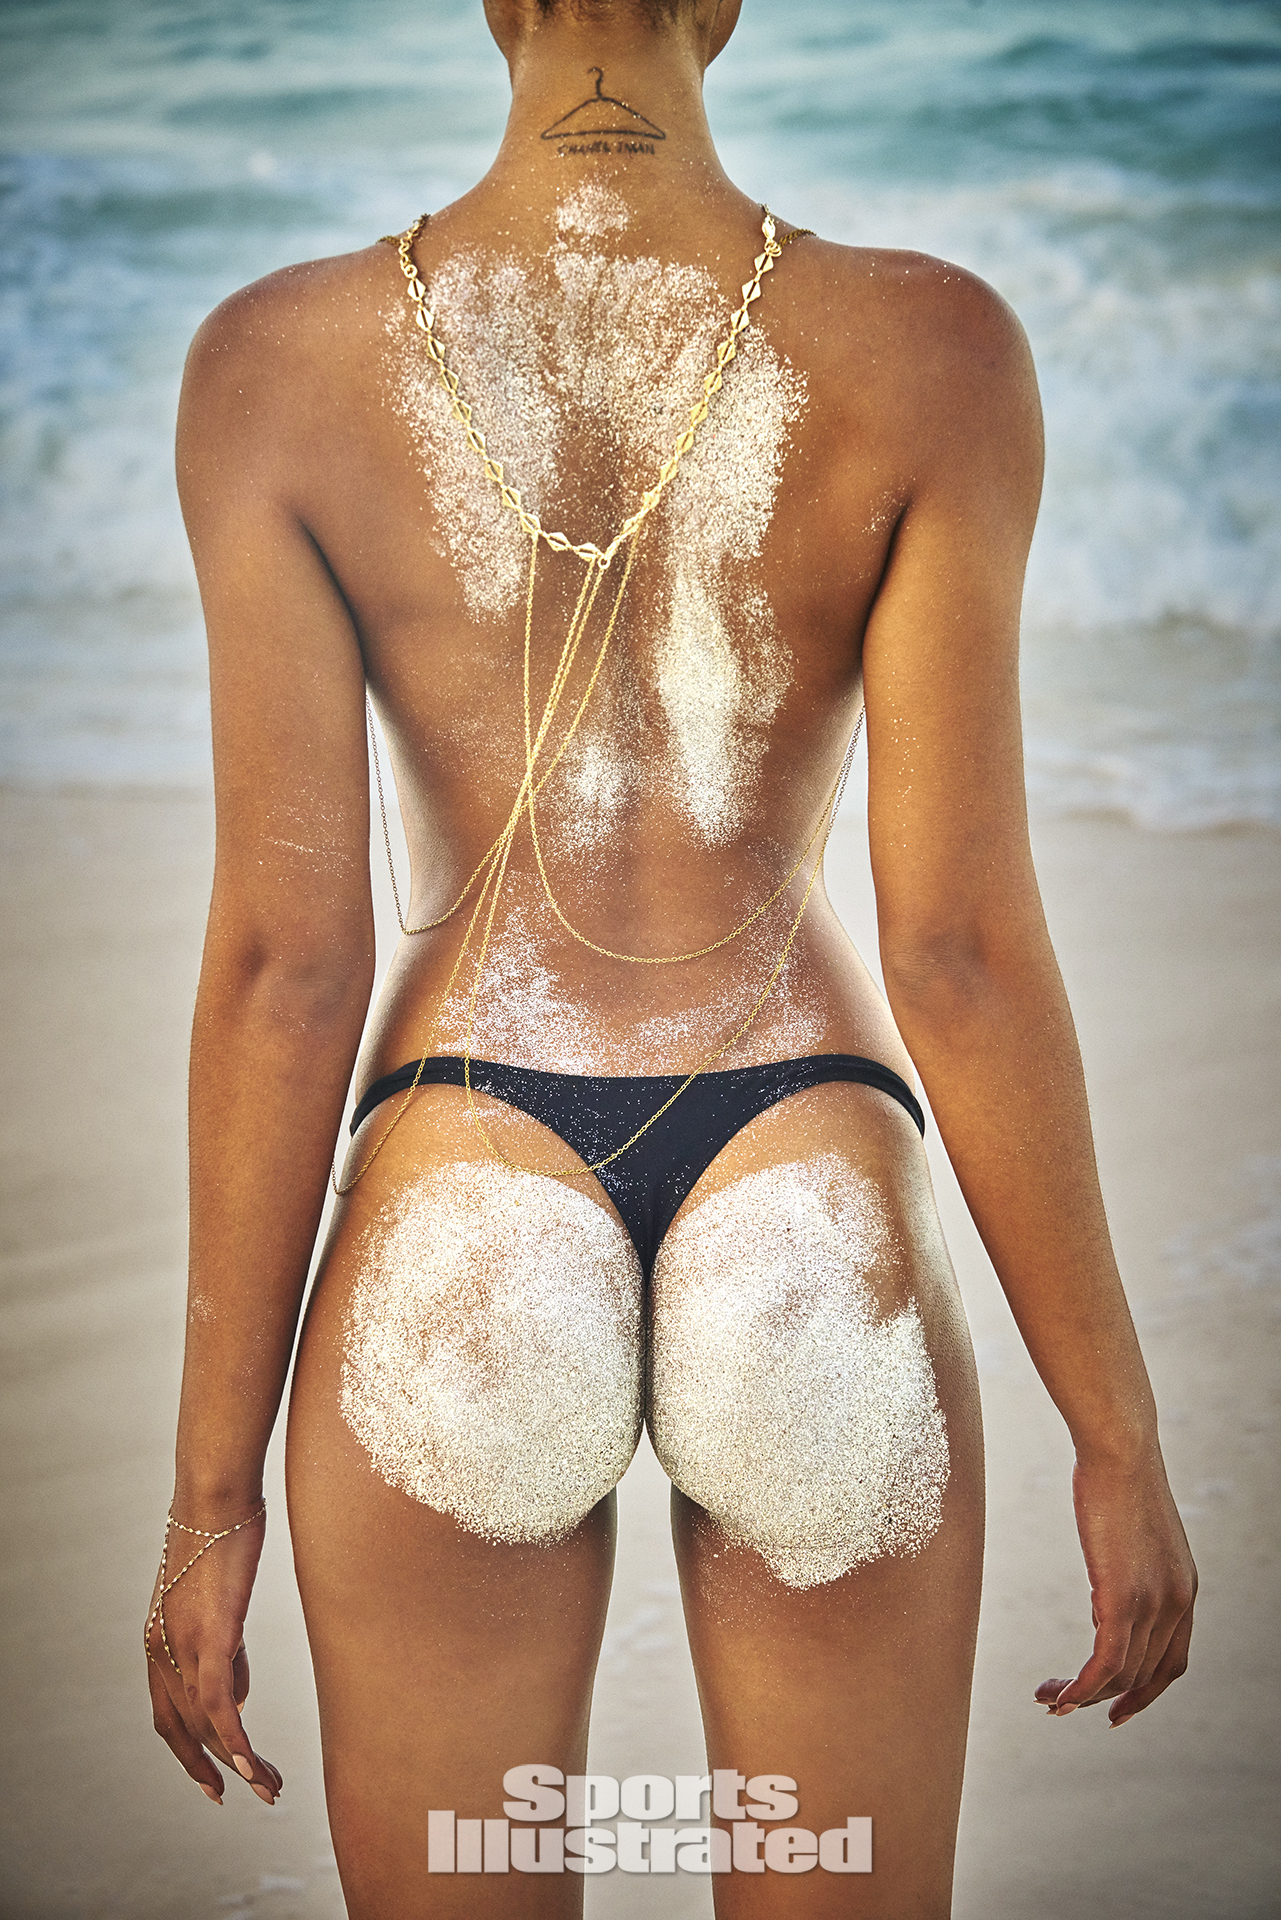 Chanel Iman was photographed by Ruven Afanador in Zanzibar. Swimsuit by Charlie By Matthew Zink.